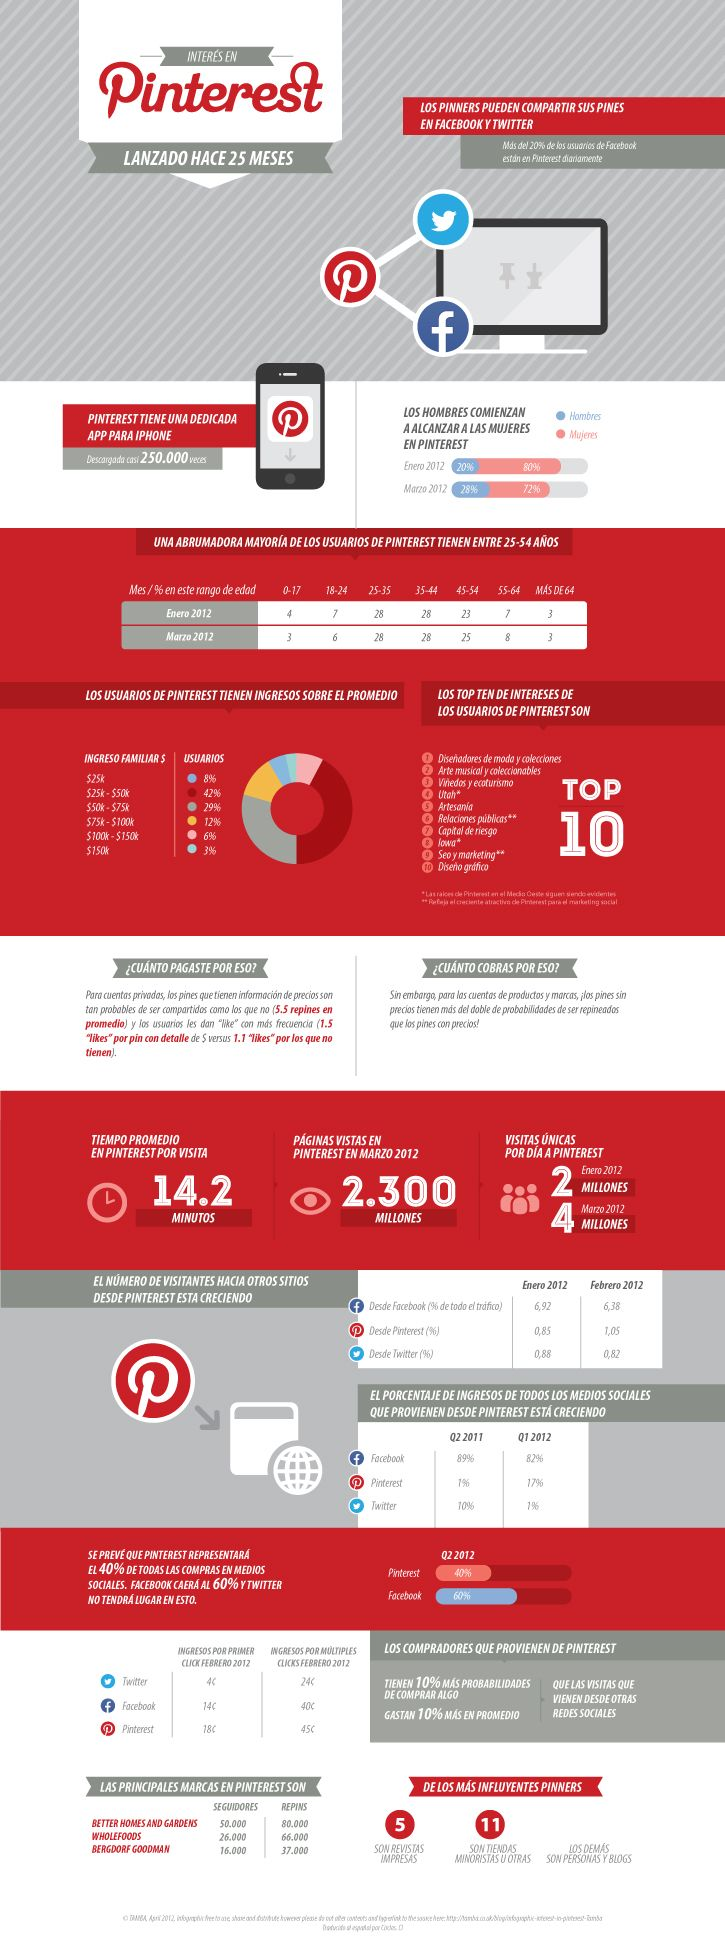 Pinterest - Infographic by Oven